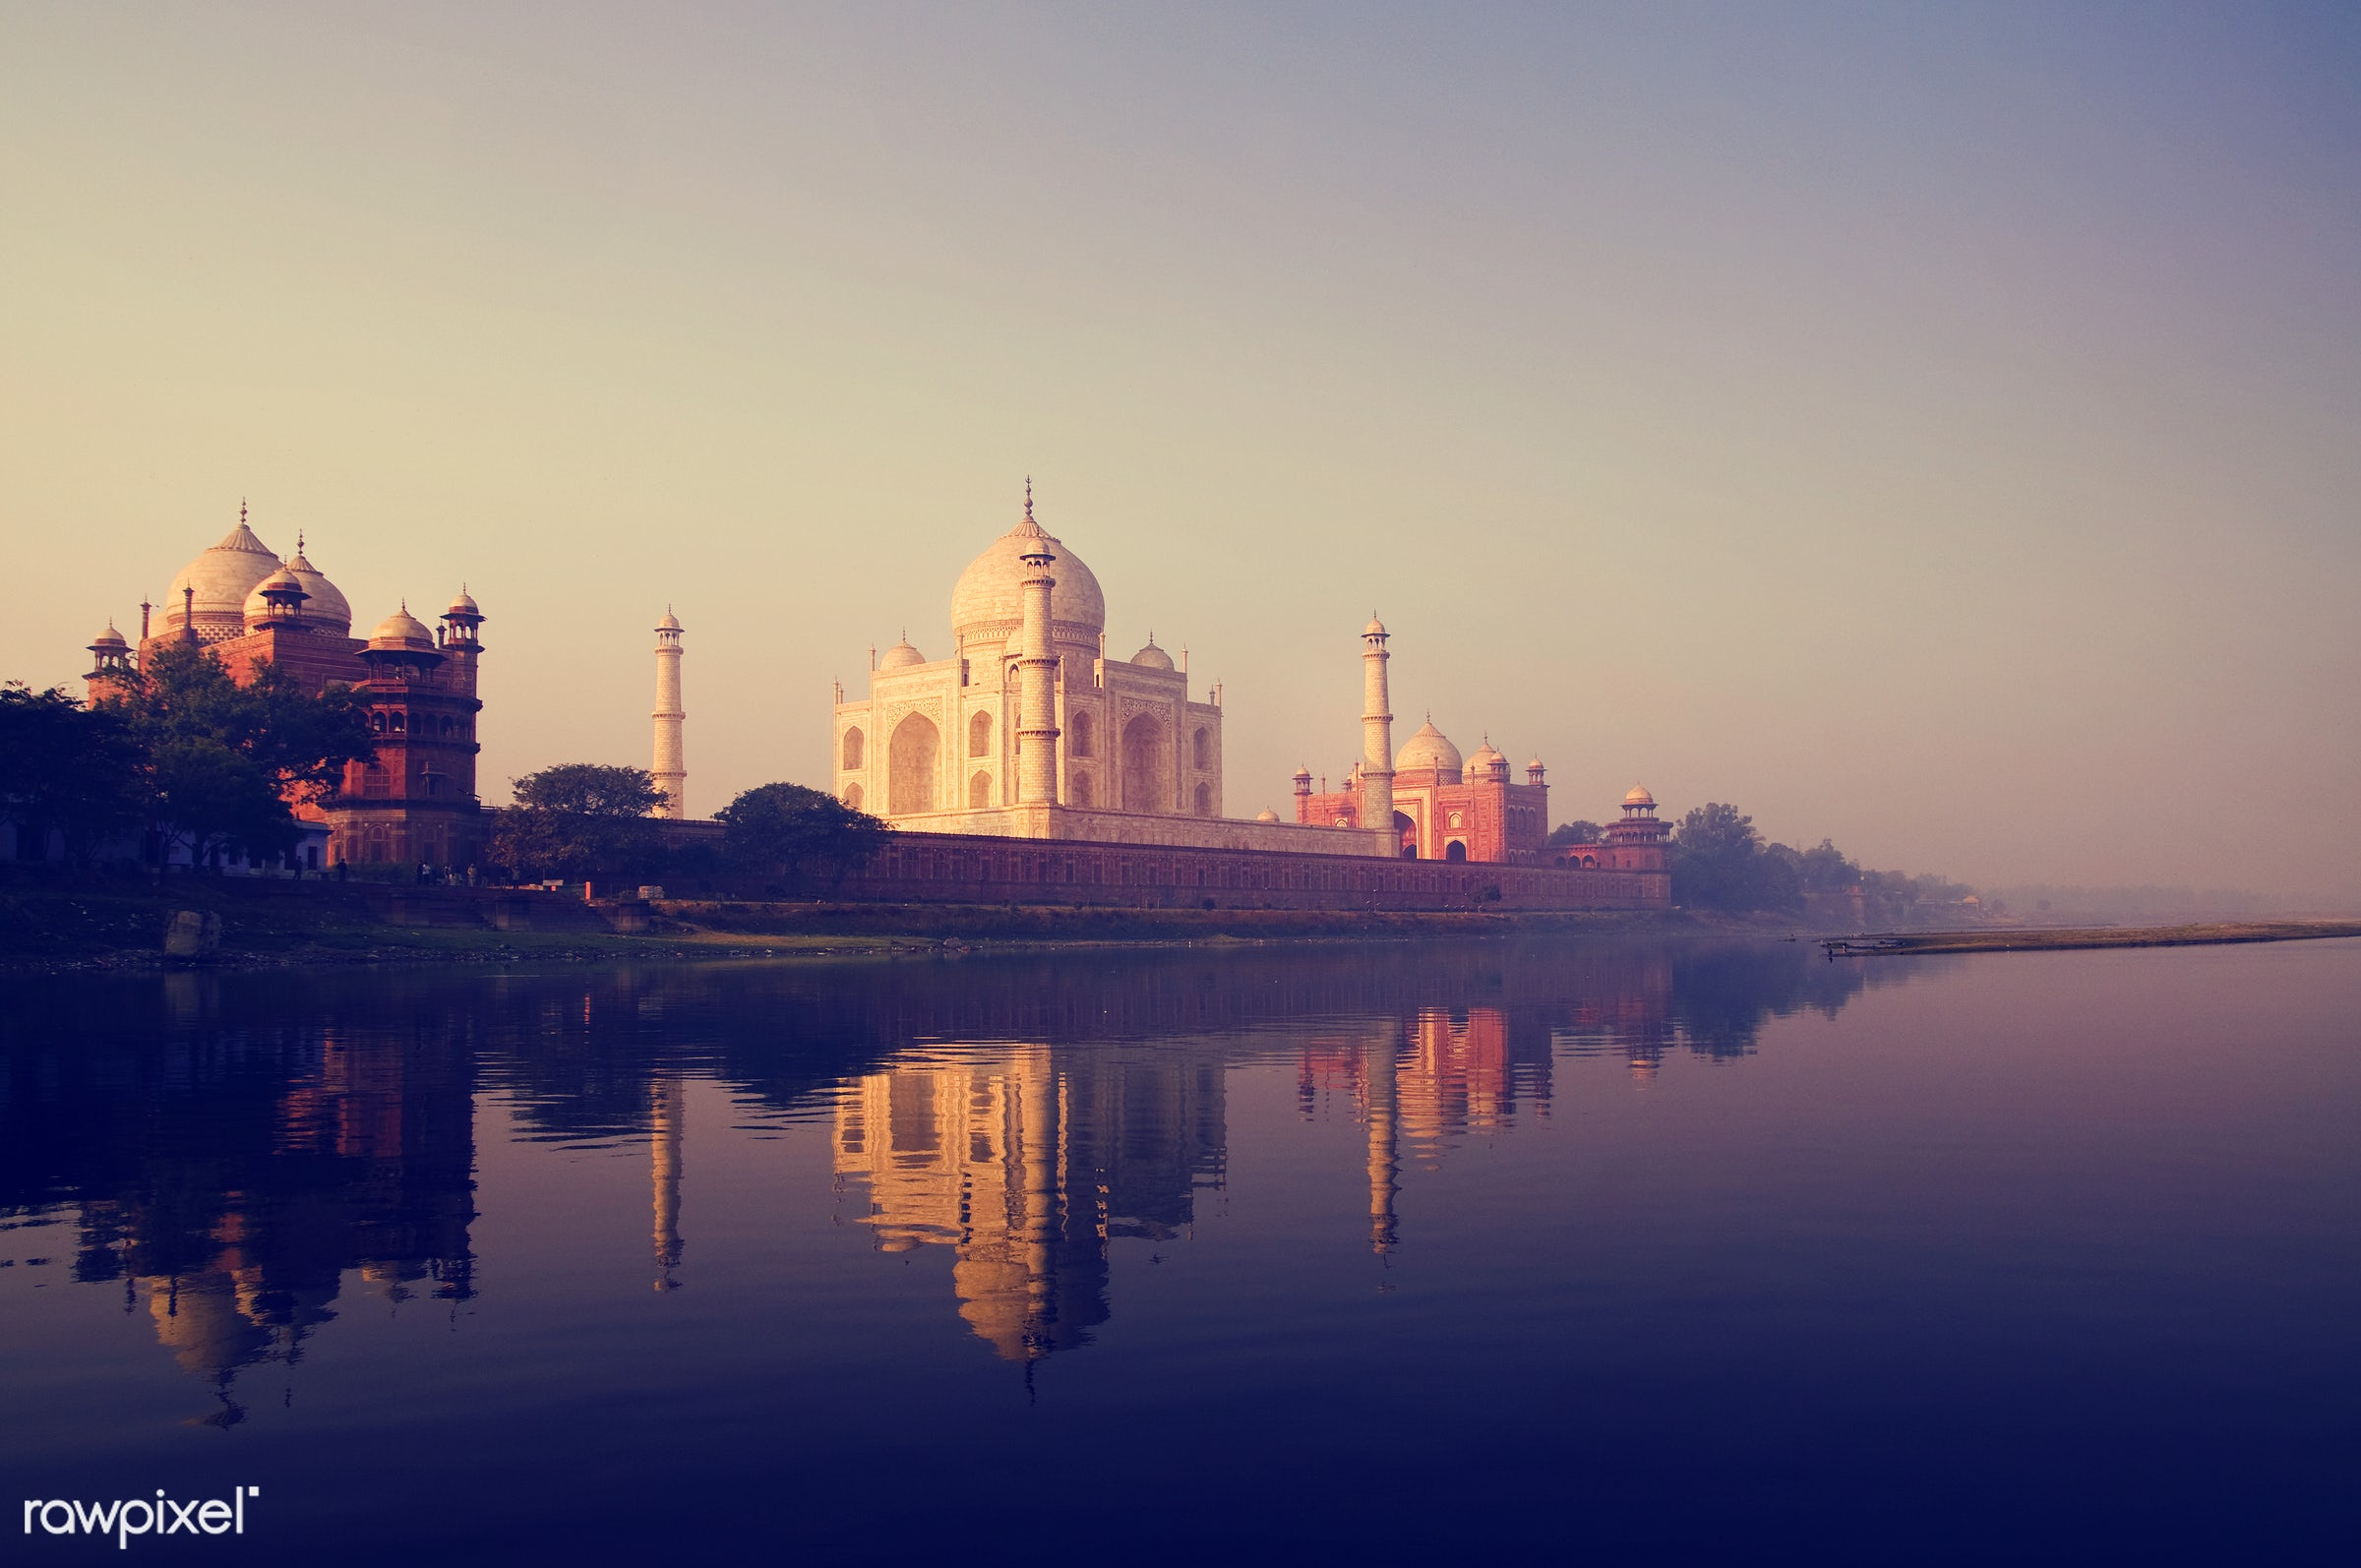 The Taj Mahal in Agra India - 7 wonders, agra, architecture, architecture and buildings, asia, building exterior, built...